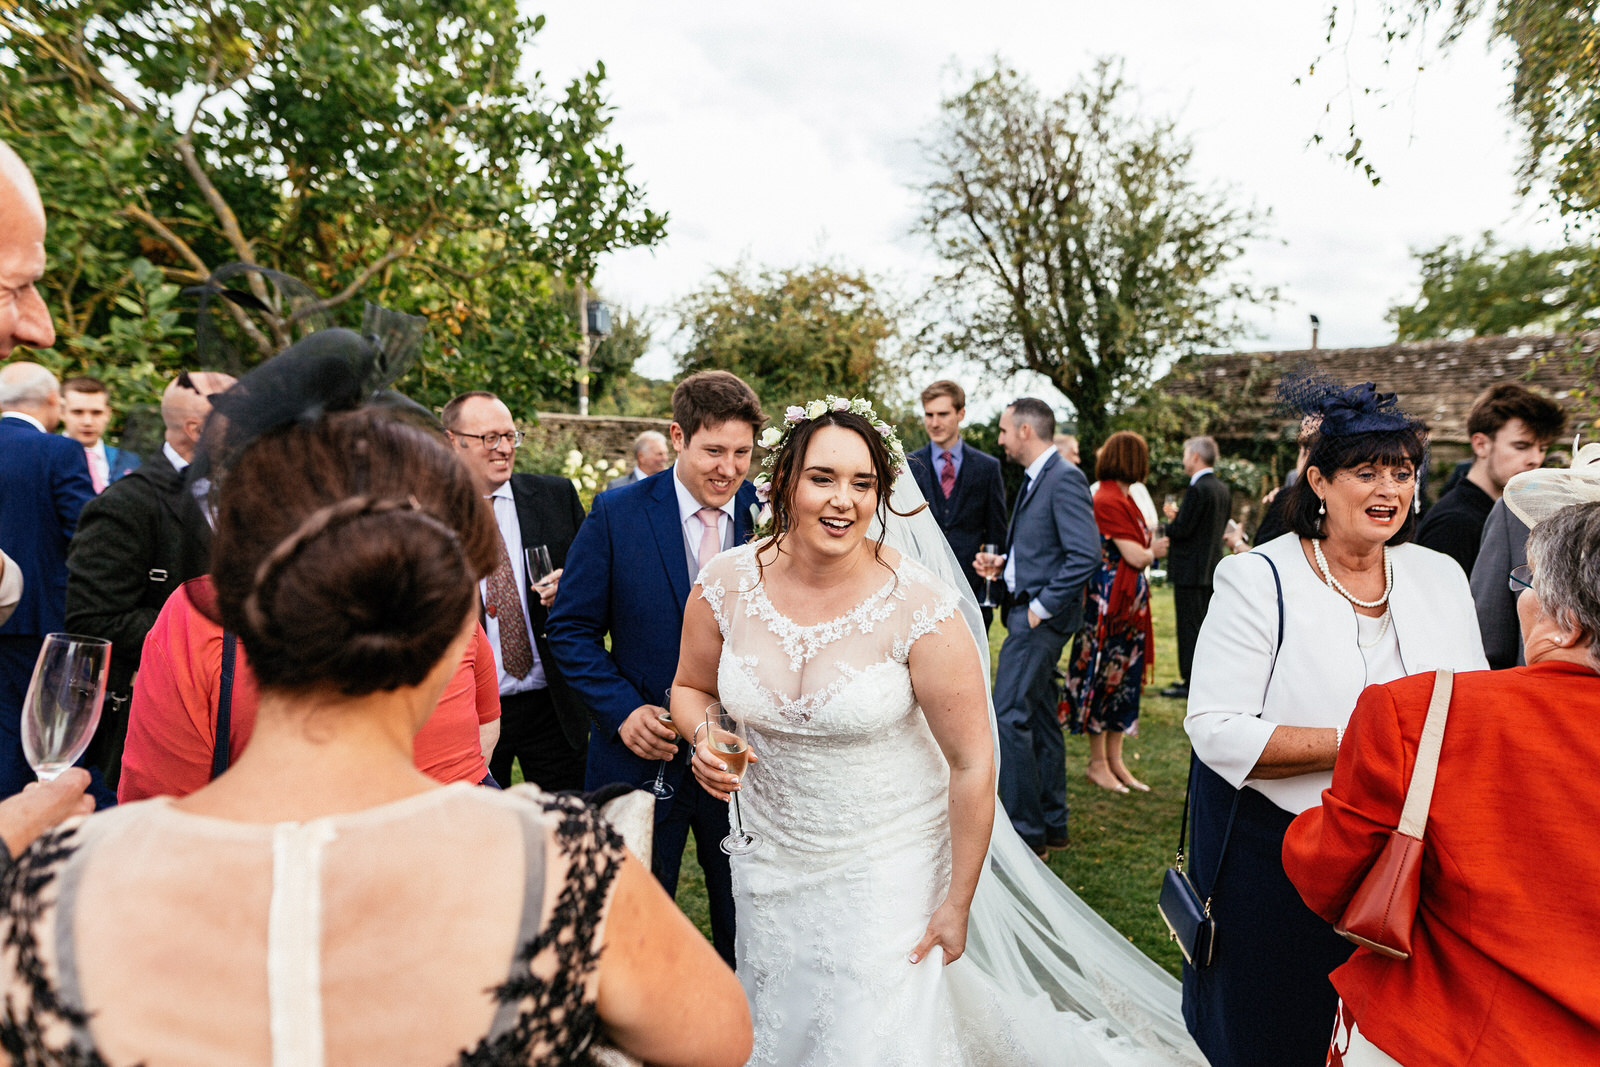 Winkworth-Farm-Wedding-Photographer-077.jpg